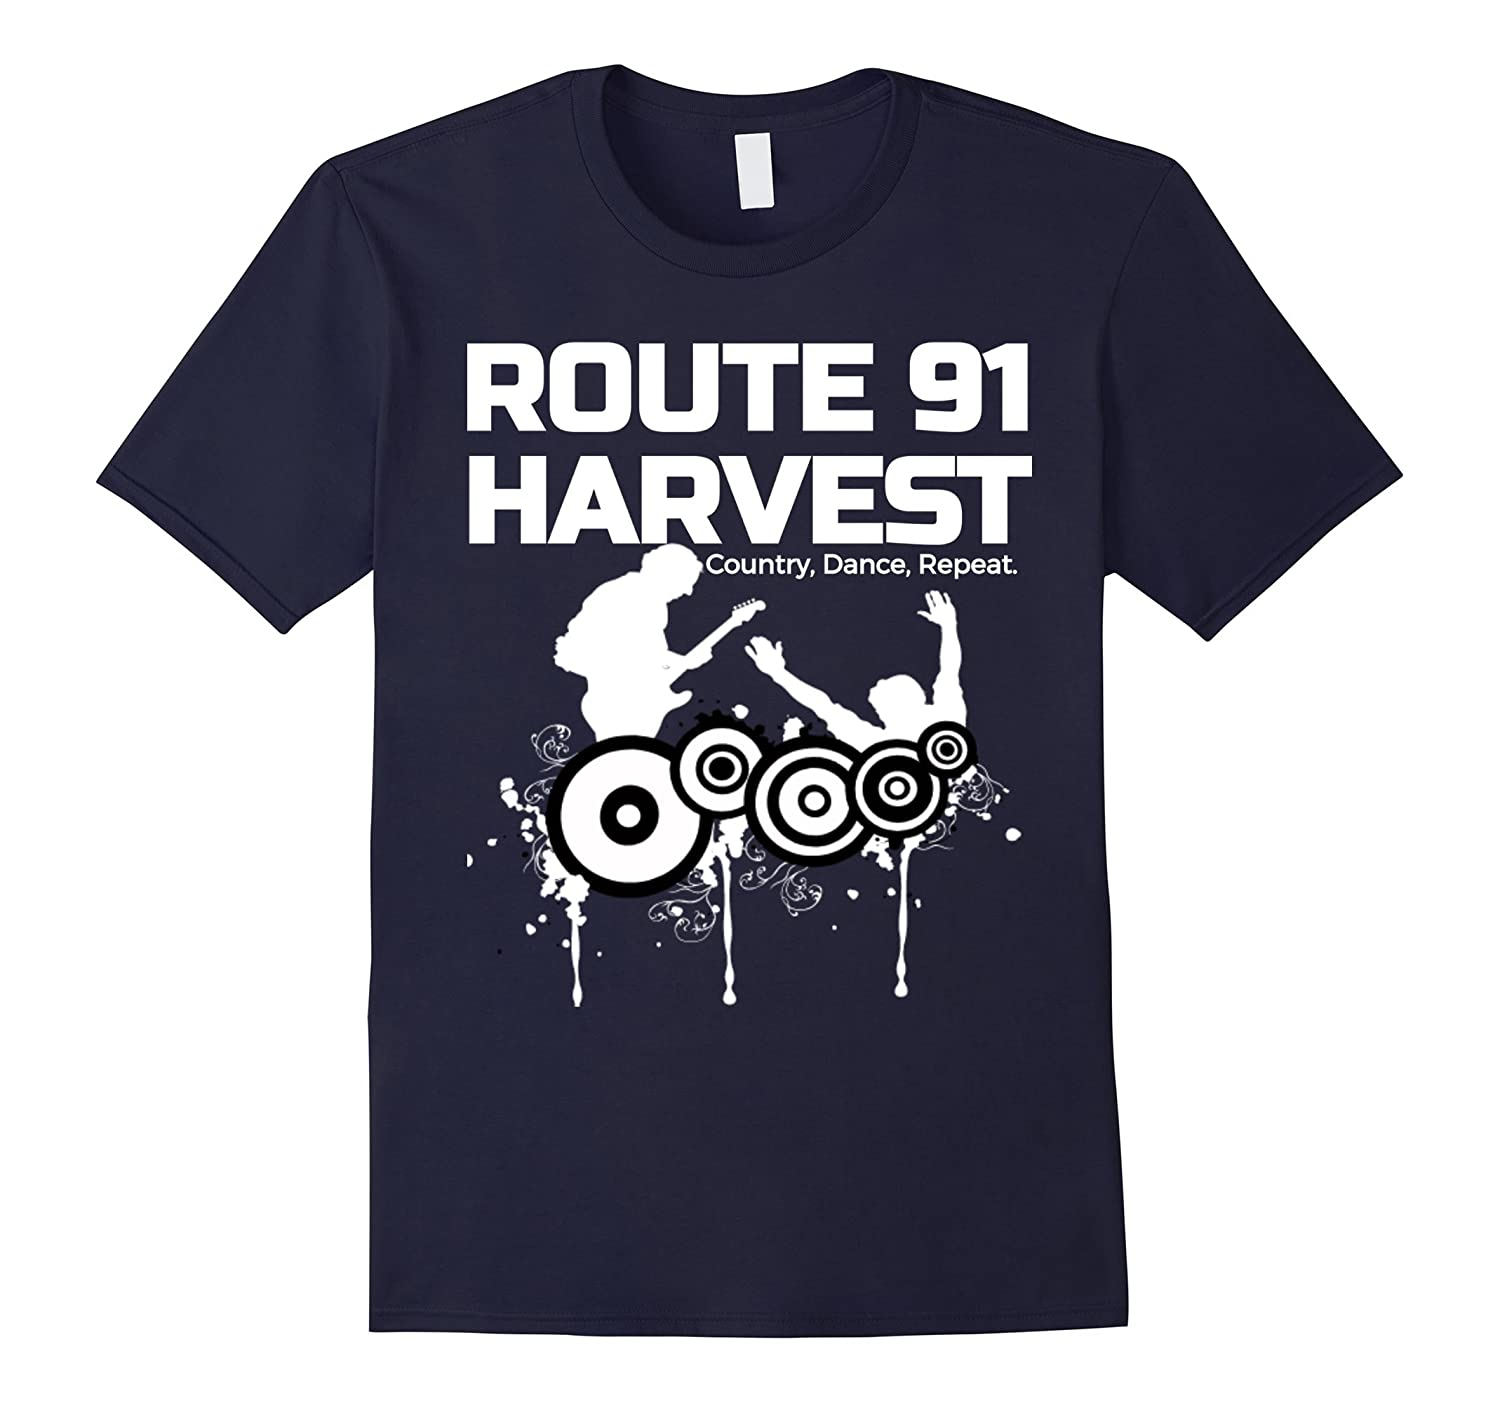 Route 91 harvest Shirt Route 91 Harvest Tshirt country music-T-Shirt